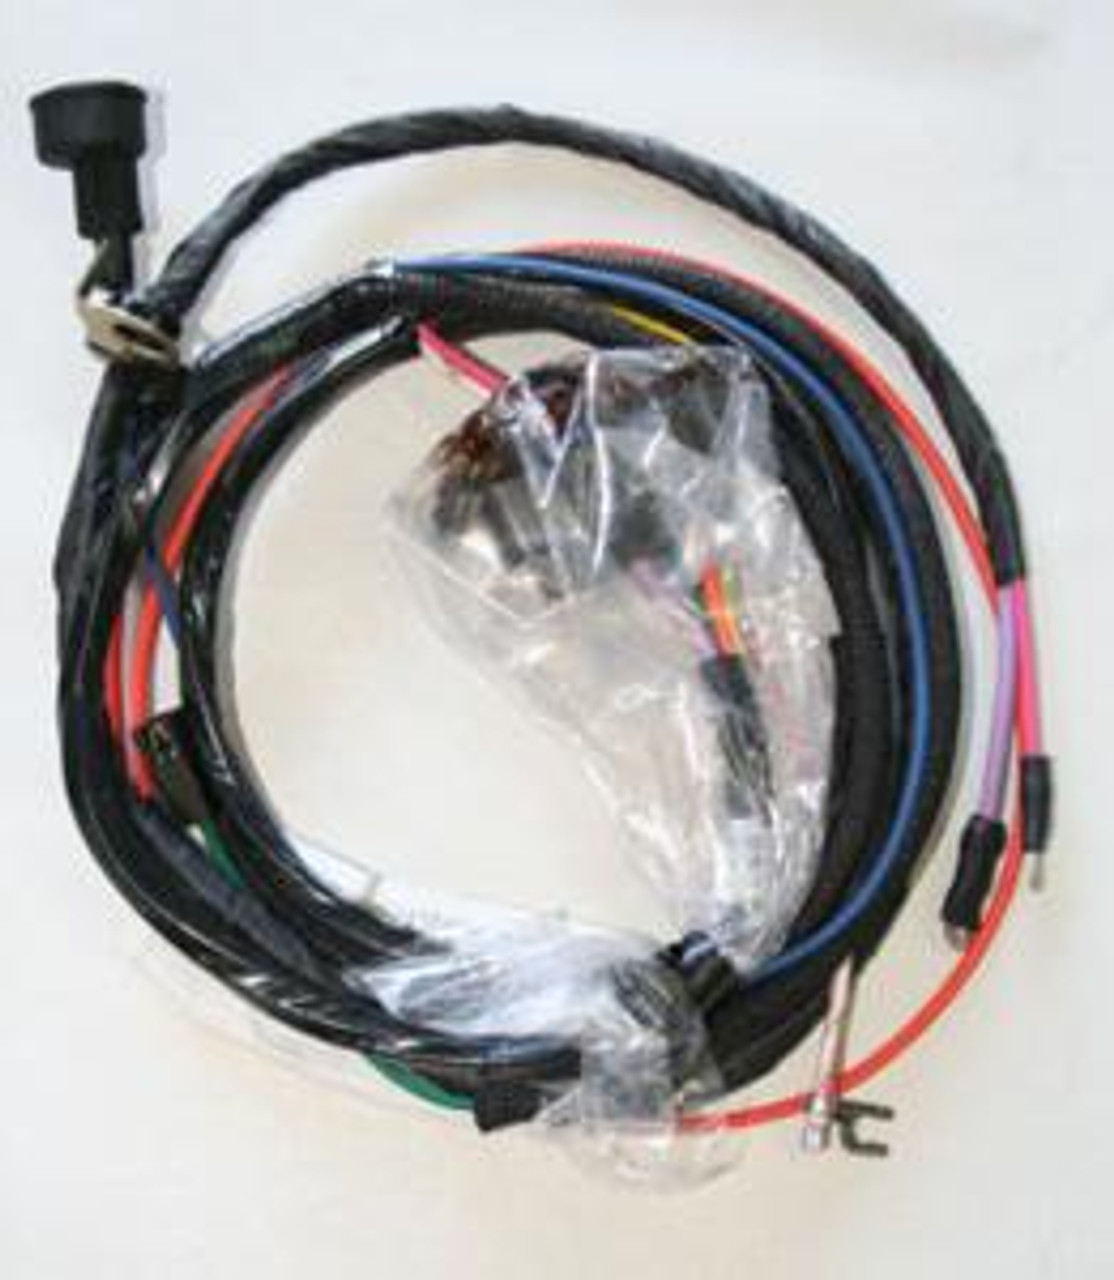 1971 chevelle dash wiring diagram 1971 chevelle  el camino engine harness  396 454  automatic trans  1971 chevelle  el camino engine harness